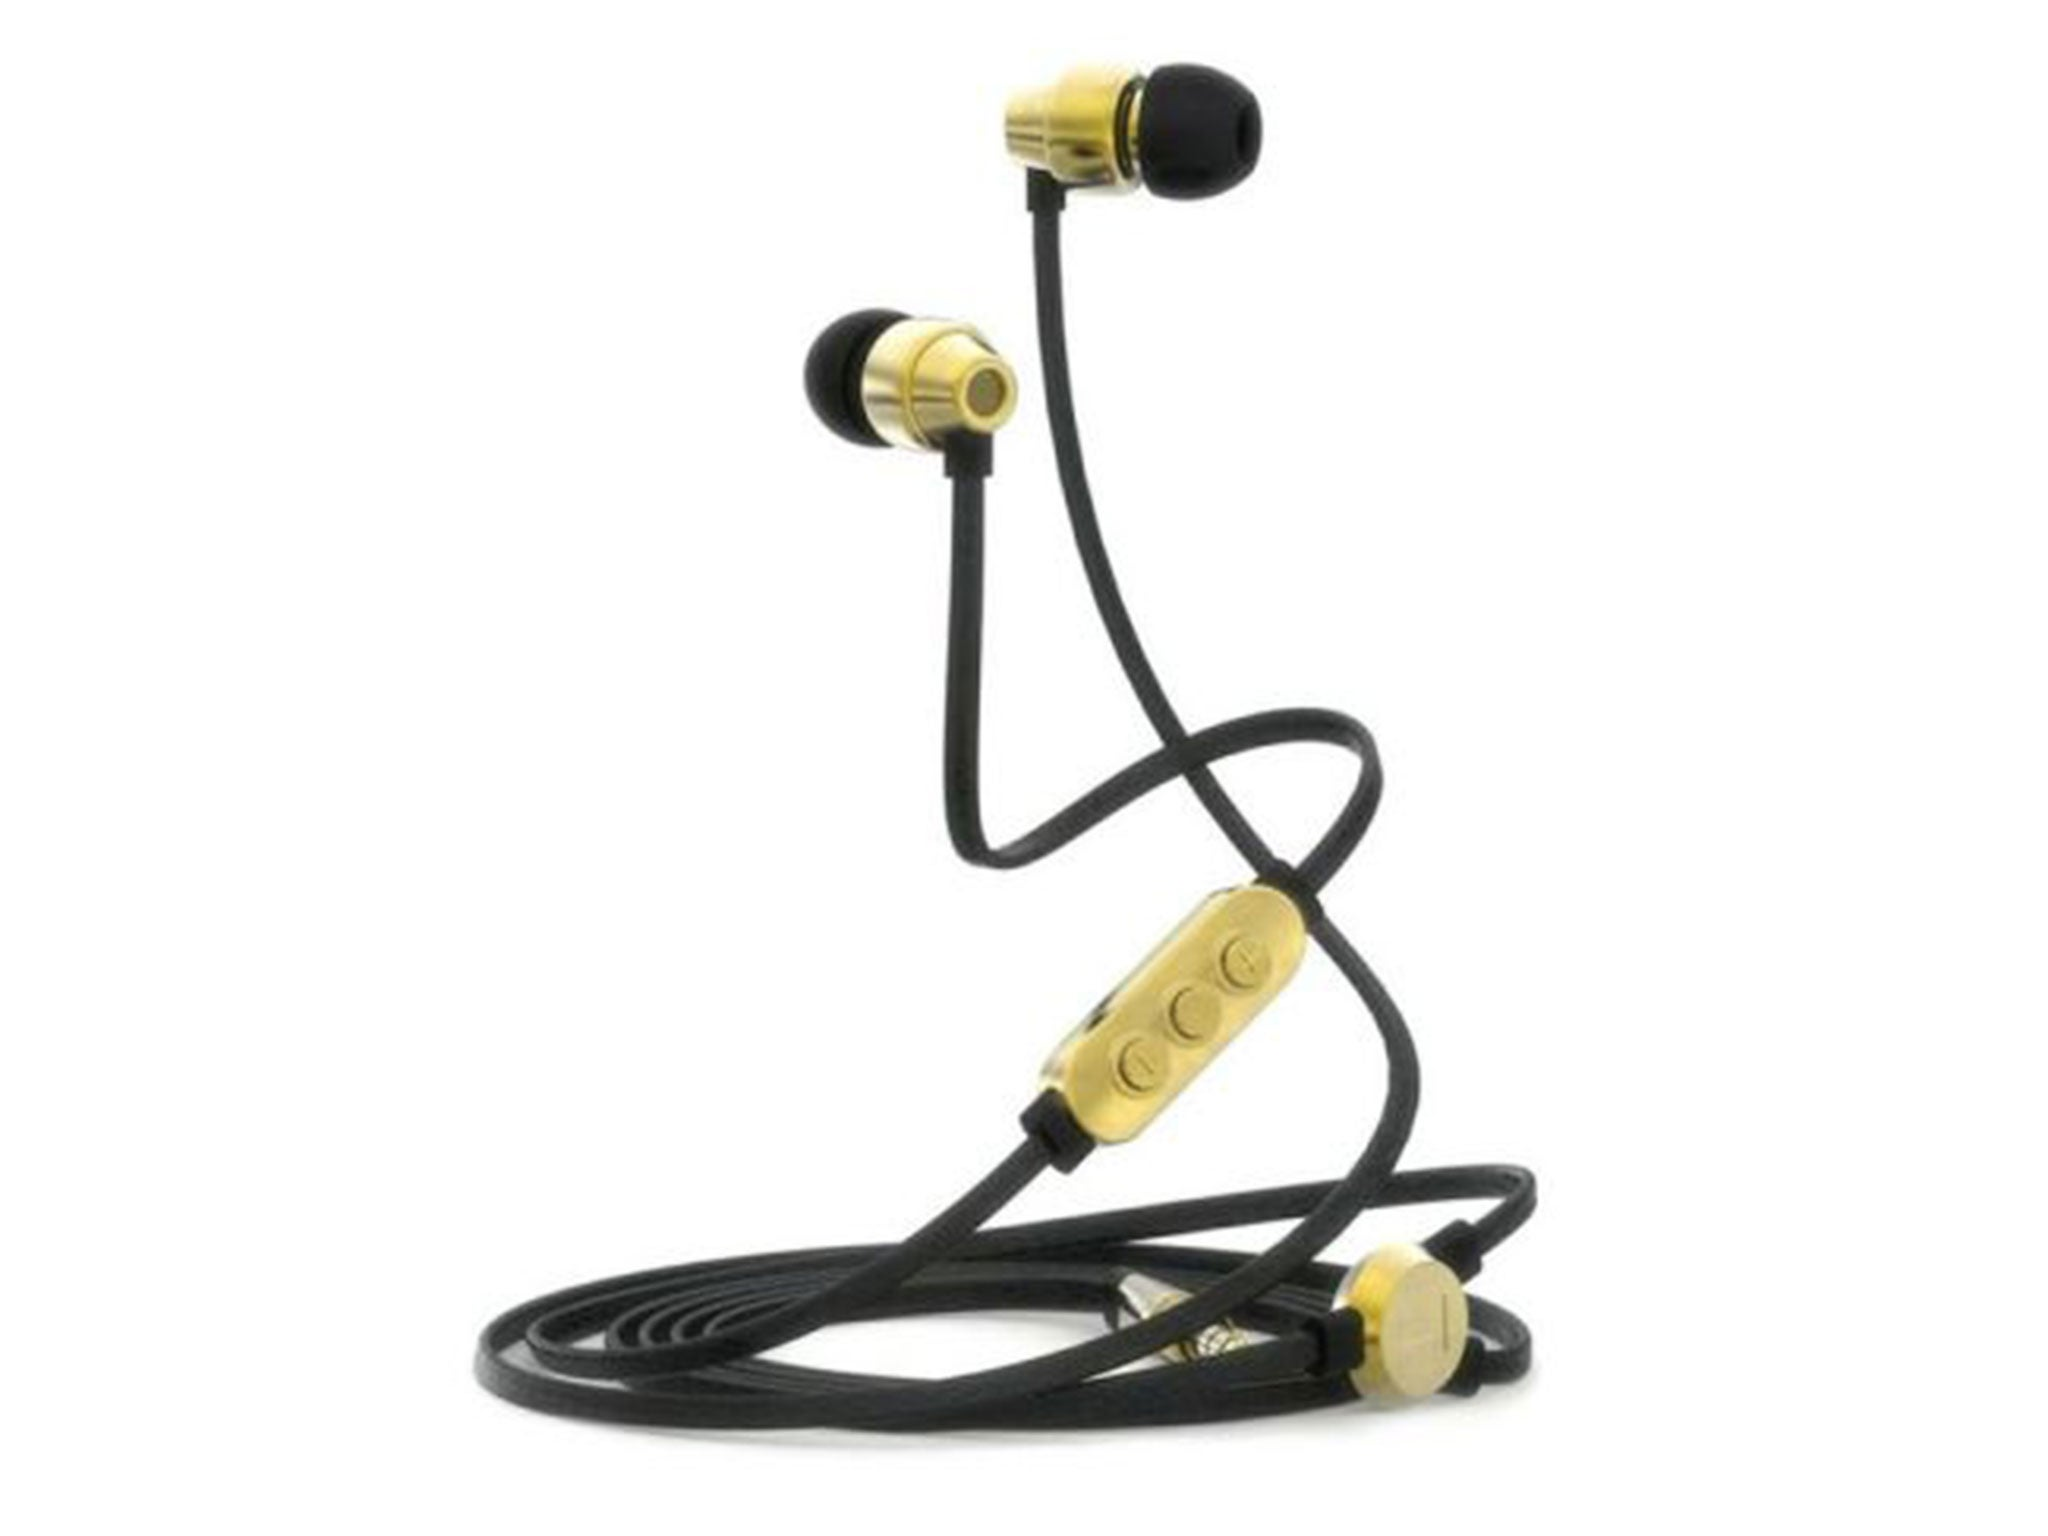 13 Best In Ear Headphones The Independent Defunc Plus Hybrid Corded Earbud These